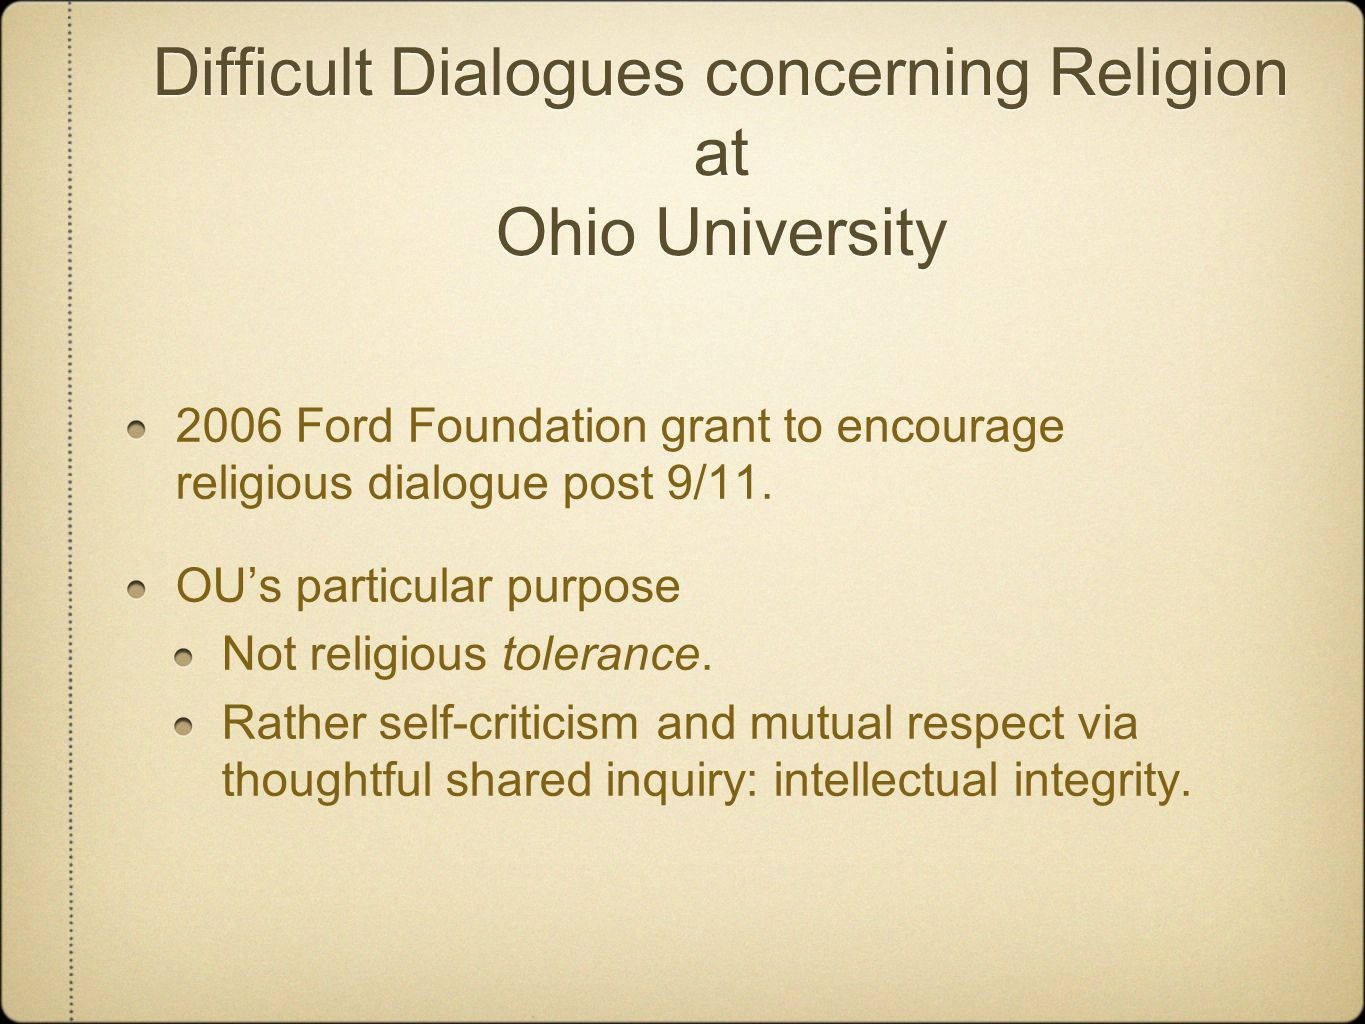 Difficult Dialogues concerning Religion at Ohio University 2006 Ford Foundation grant to encourage religious dialogue post 9/11.